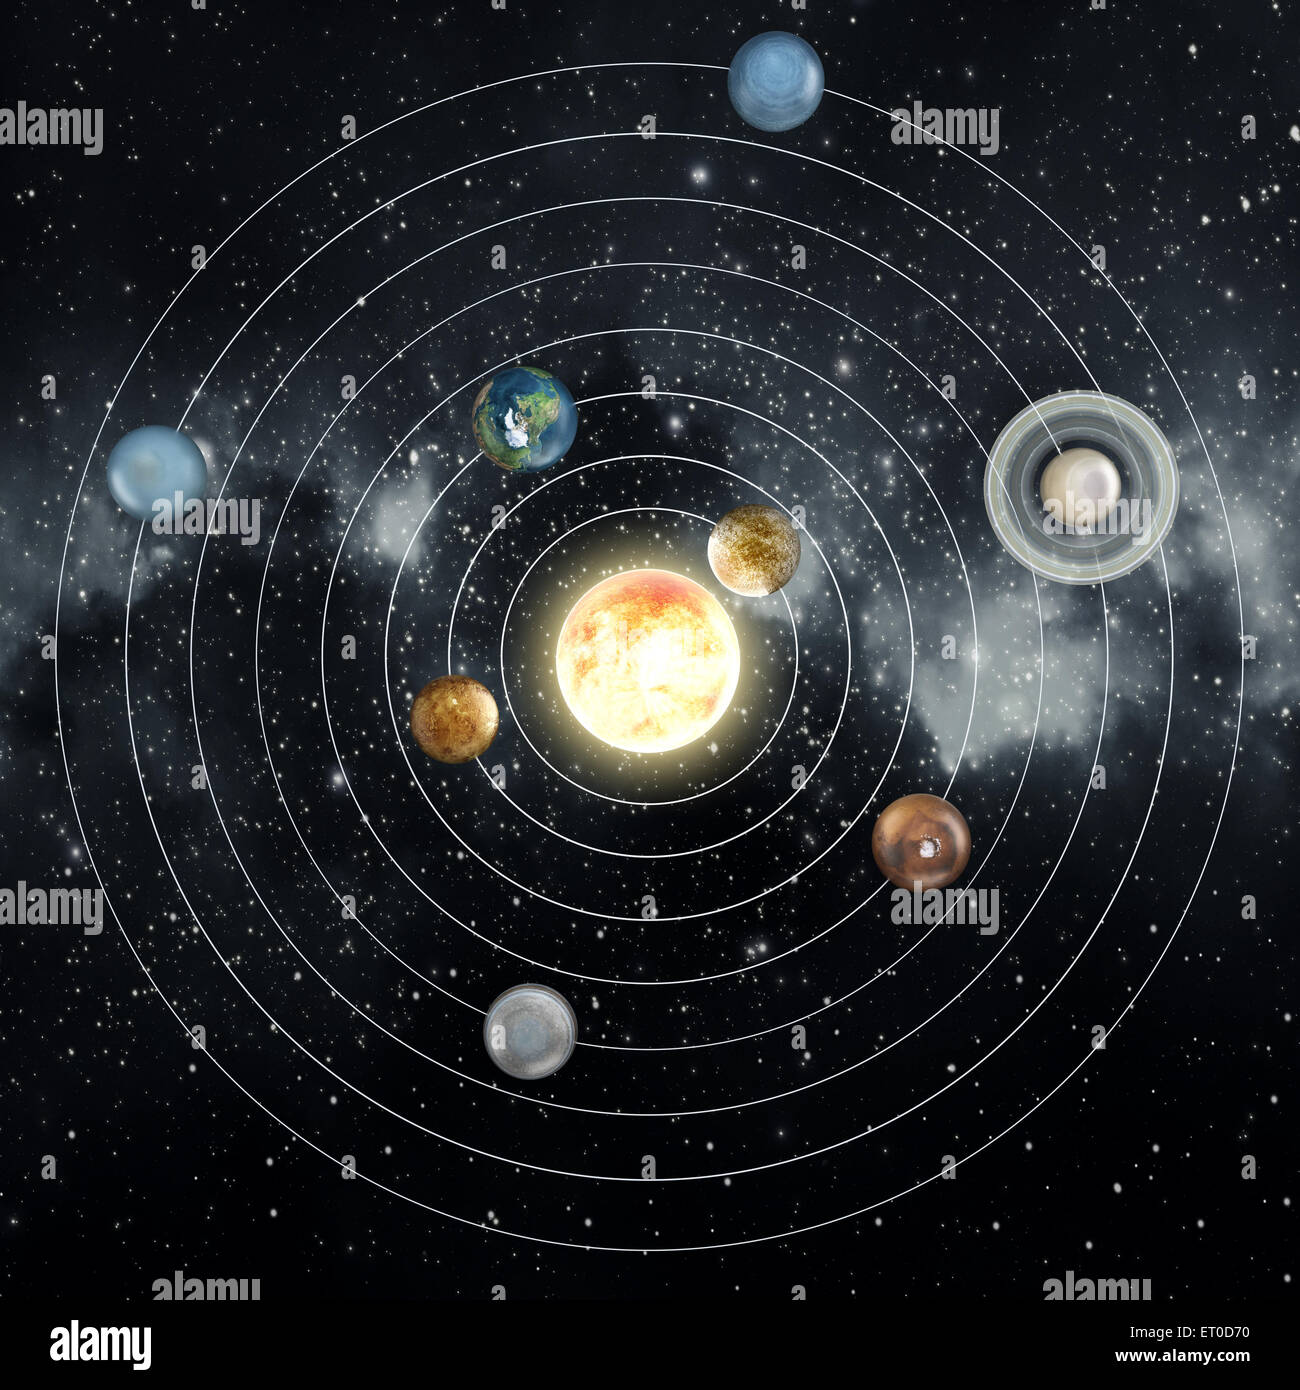 solar system diagram in the space stock photo 83603604 alamy rh alamy com diagram of solar system orbits diagram of solar system planets